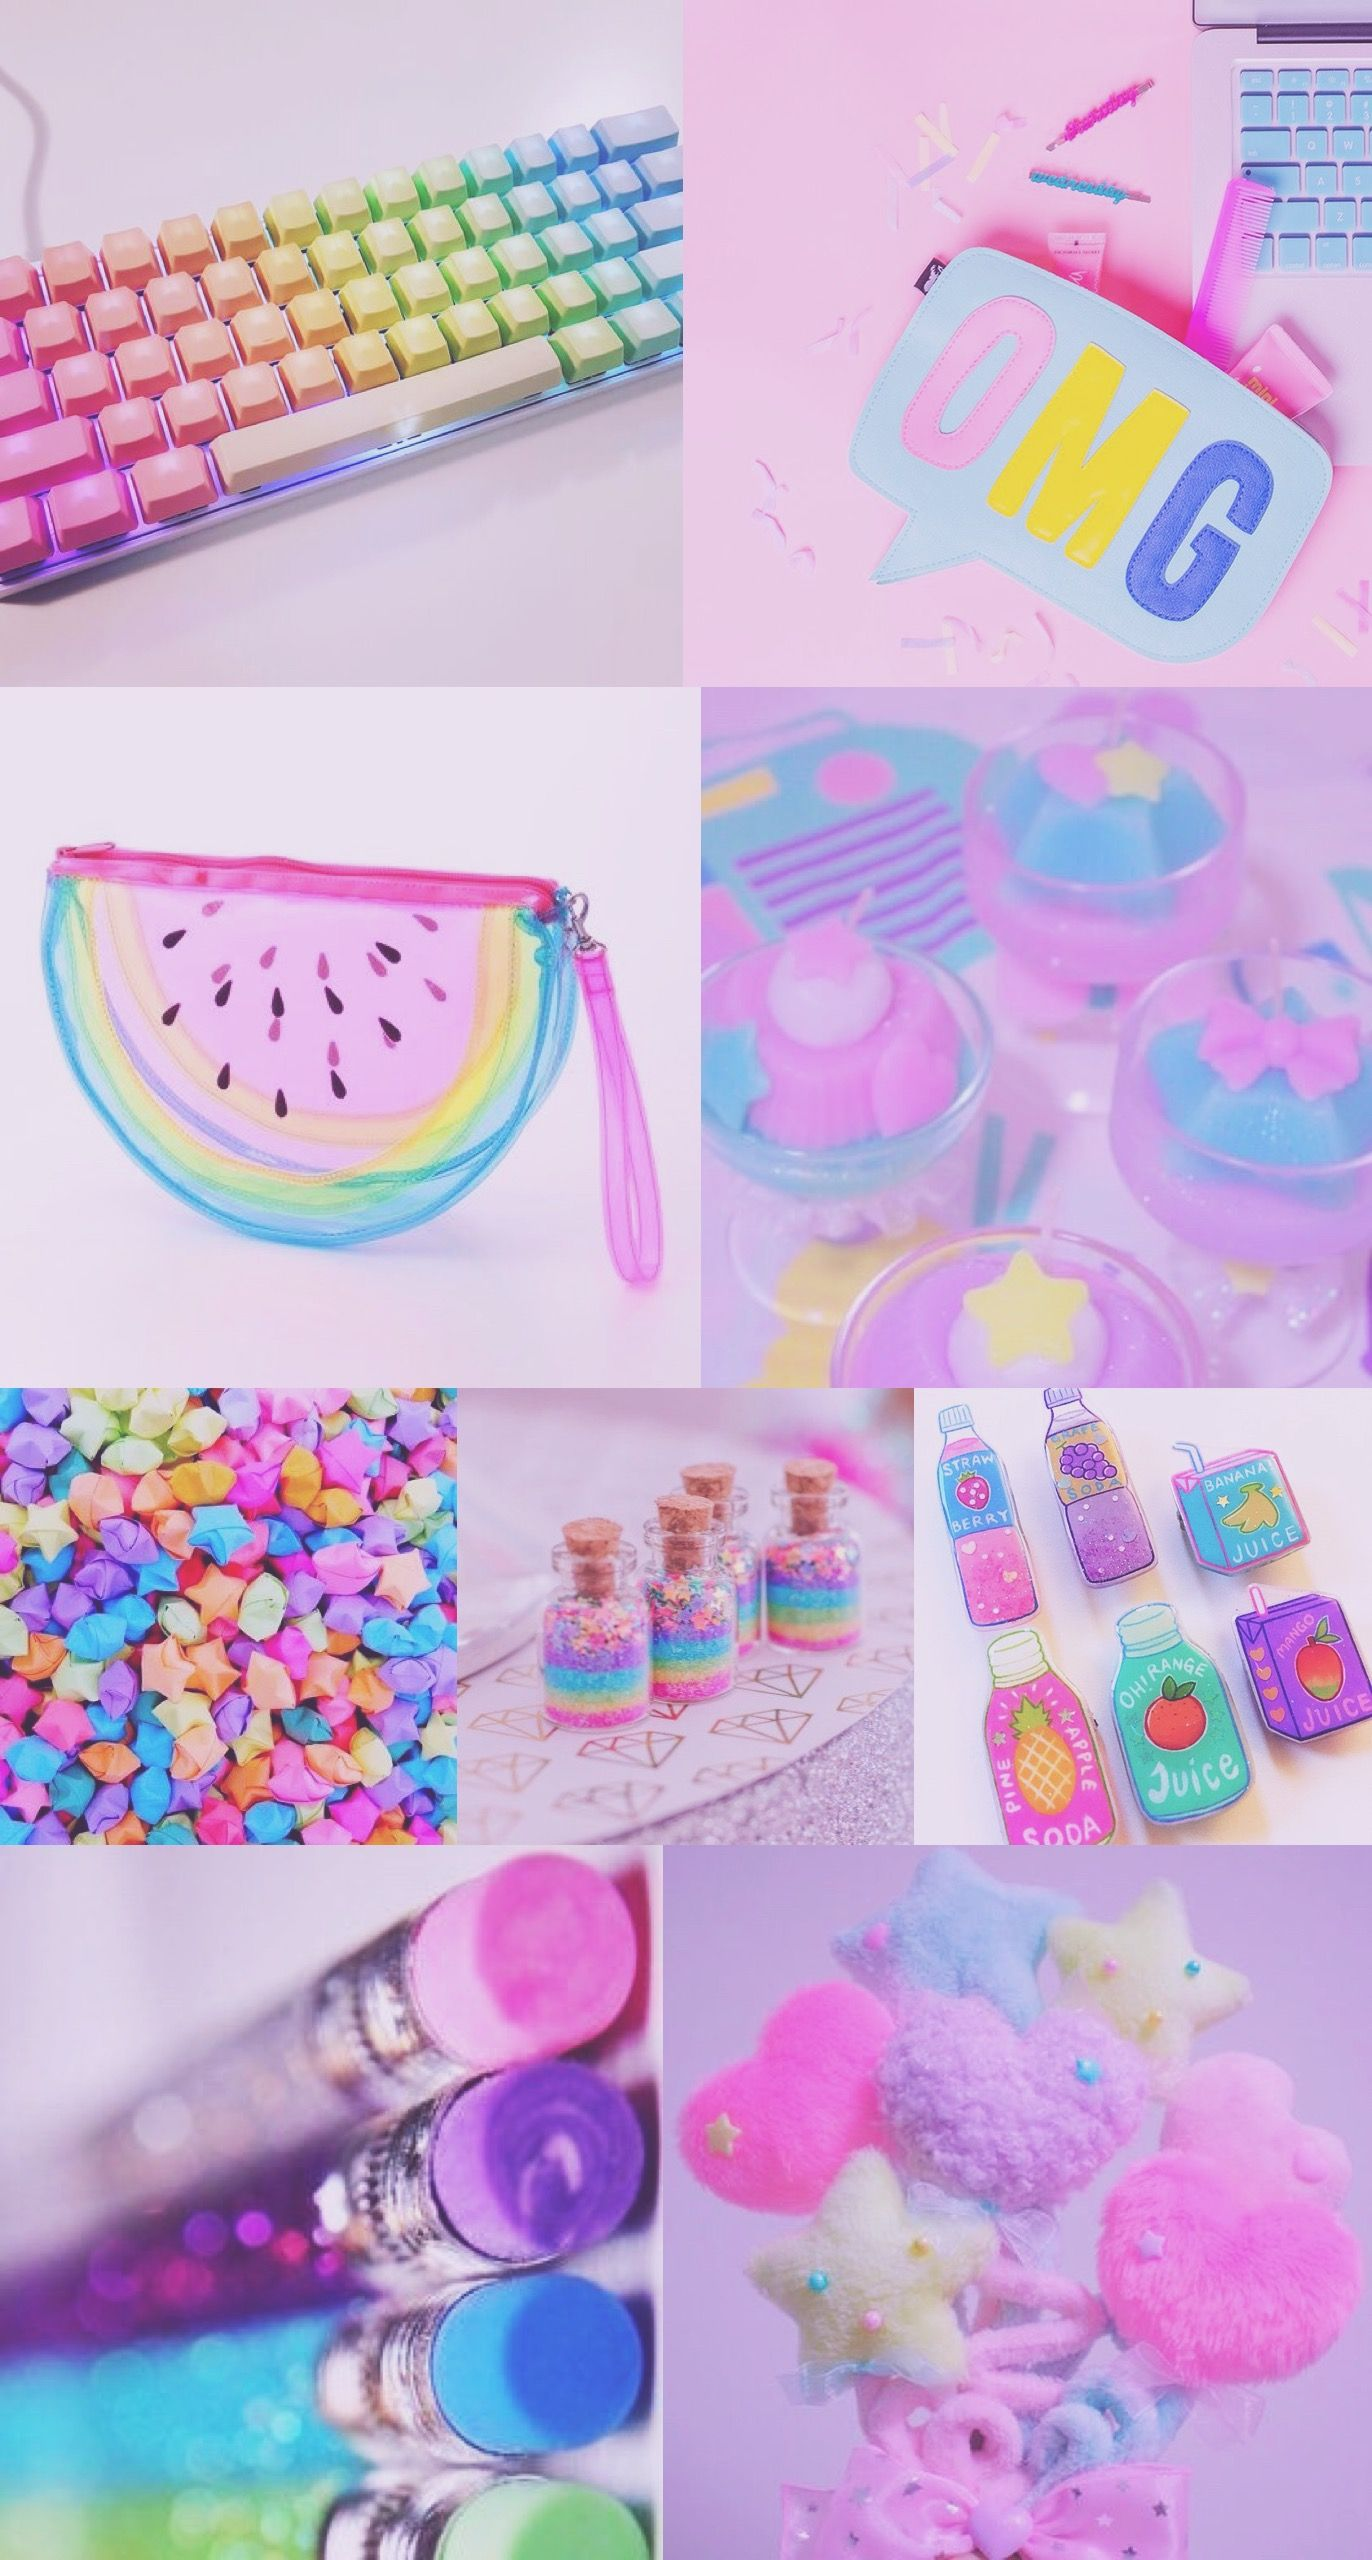 Aesthetic Wallpaper Rainbow Pastel